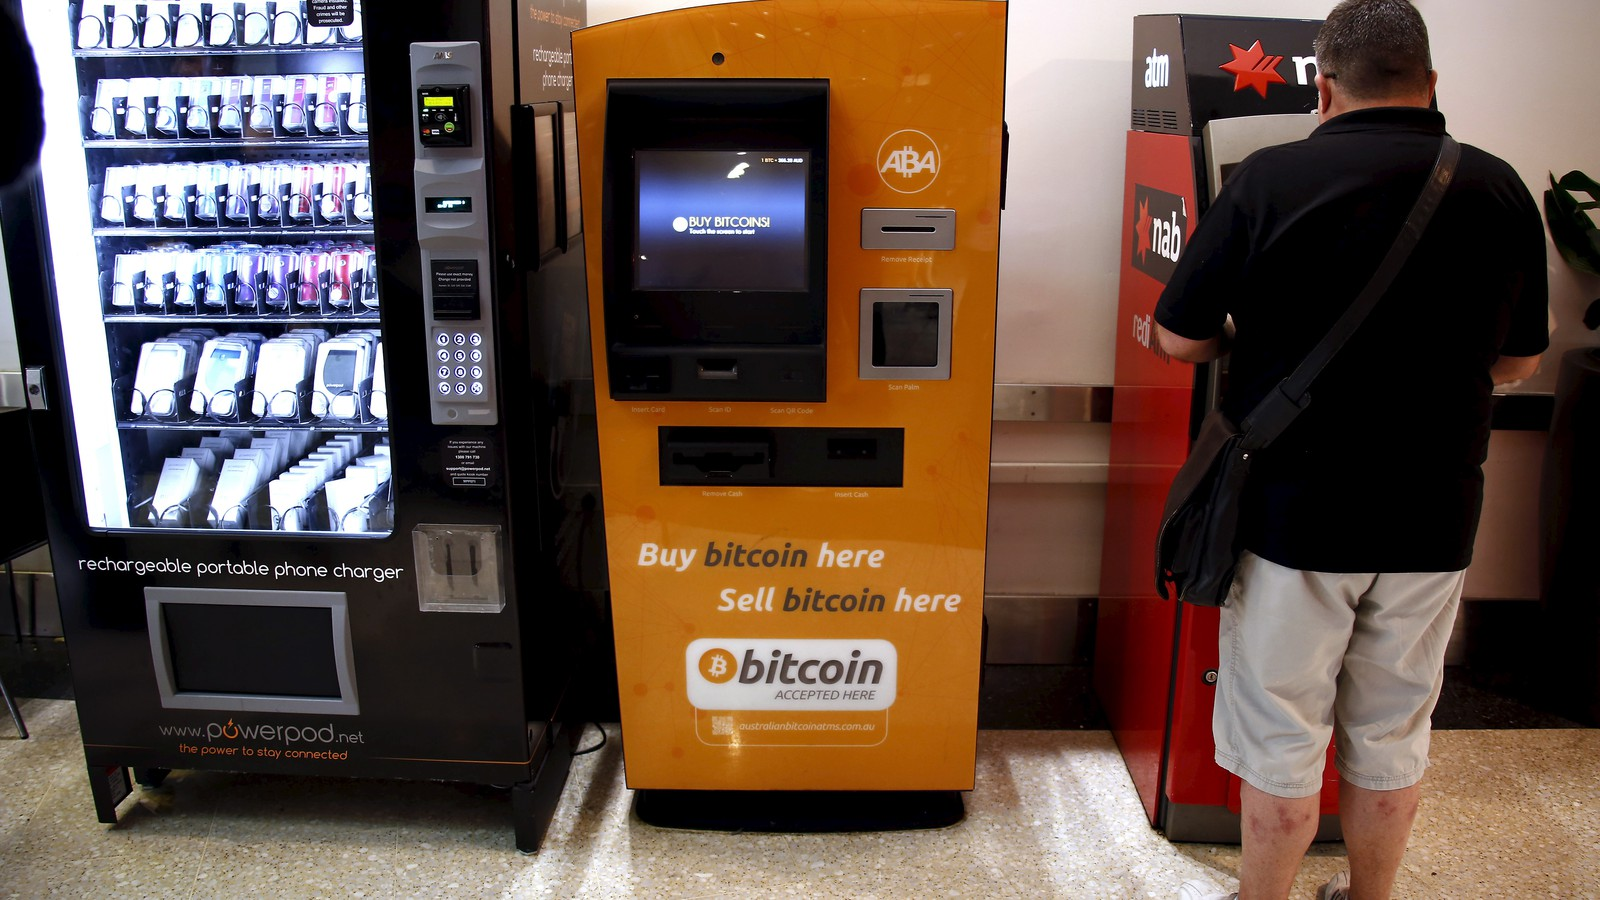 Find out what are the ways you can buy Bitcoin near me